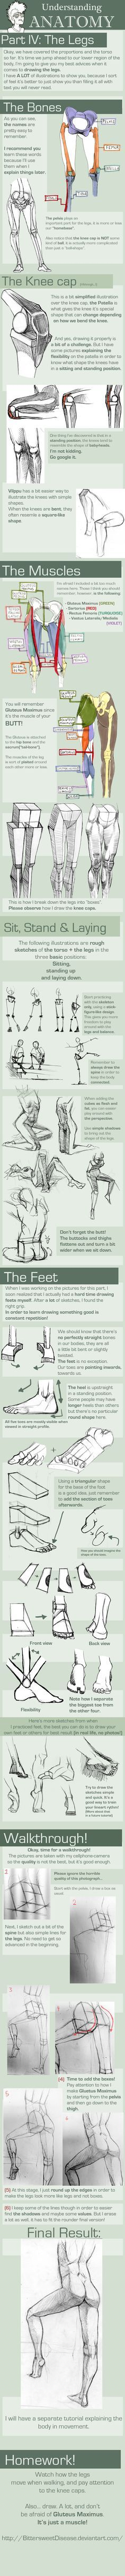 UNDERSTANDING ANATOMY: part IV The legs by =FOERVRAENGD on deviantART #drawing #legs #tutorial